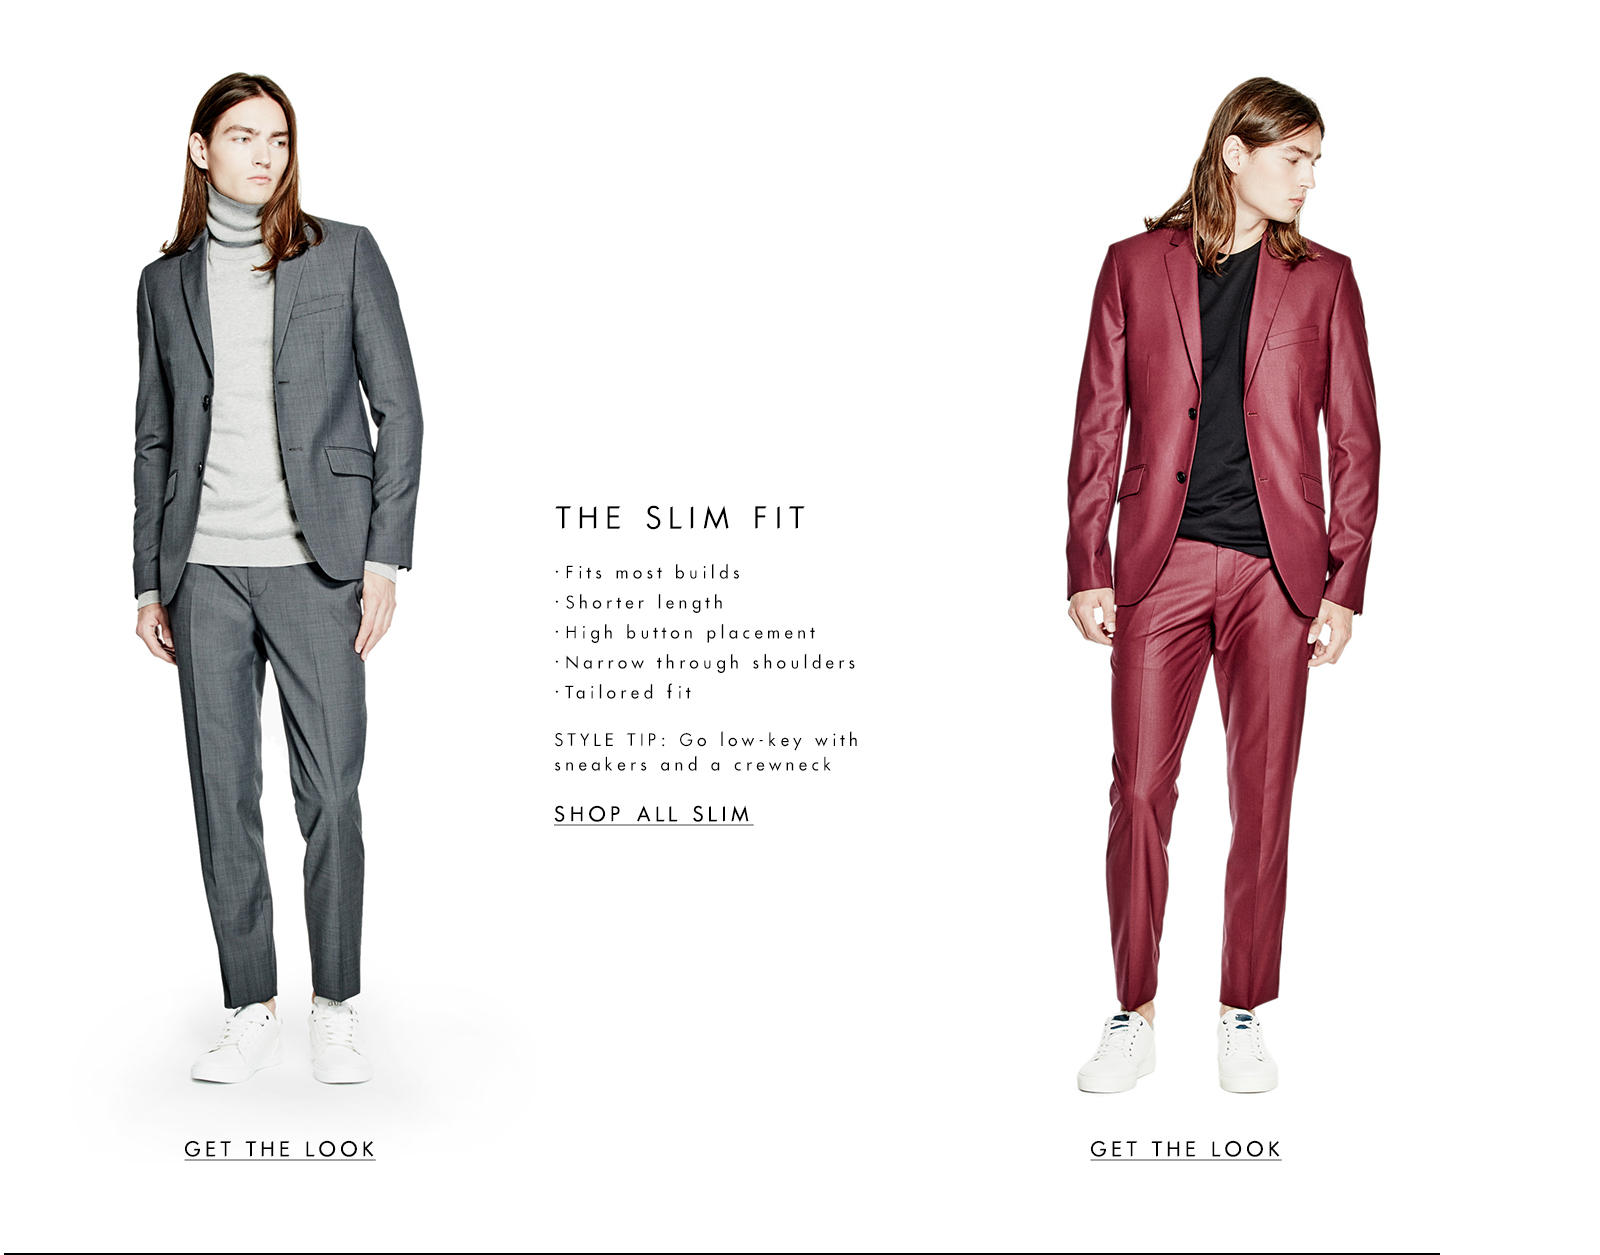 Suiting: The Slim Fit